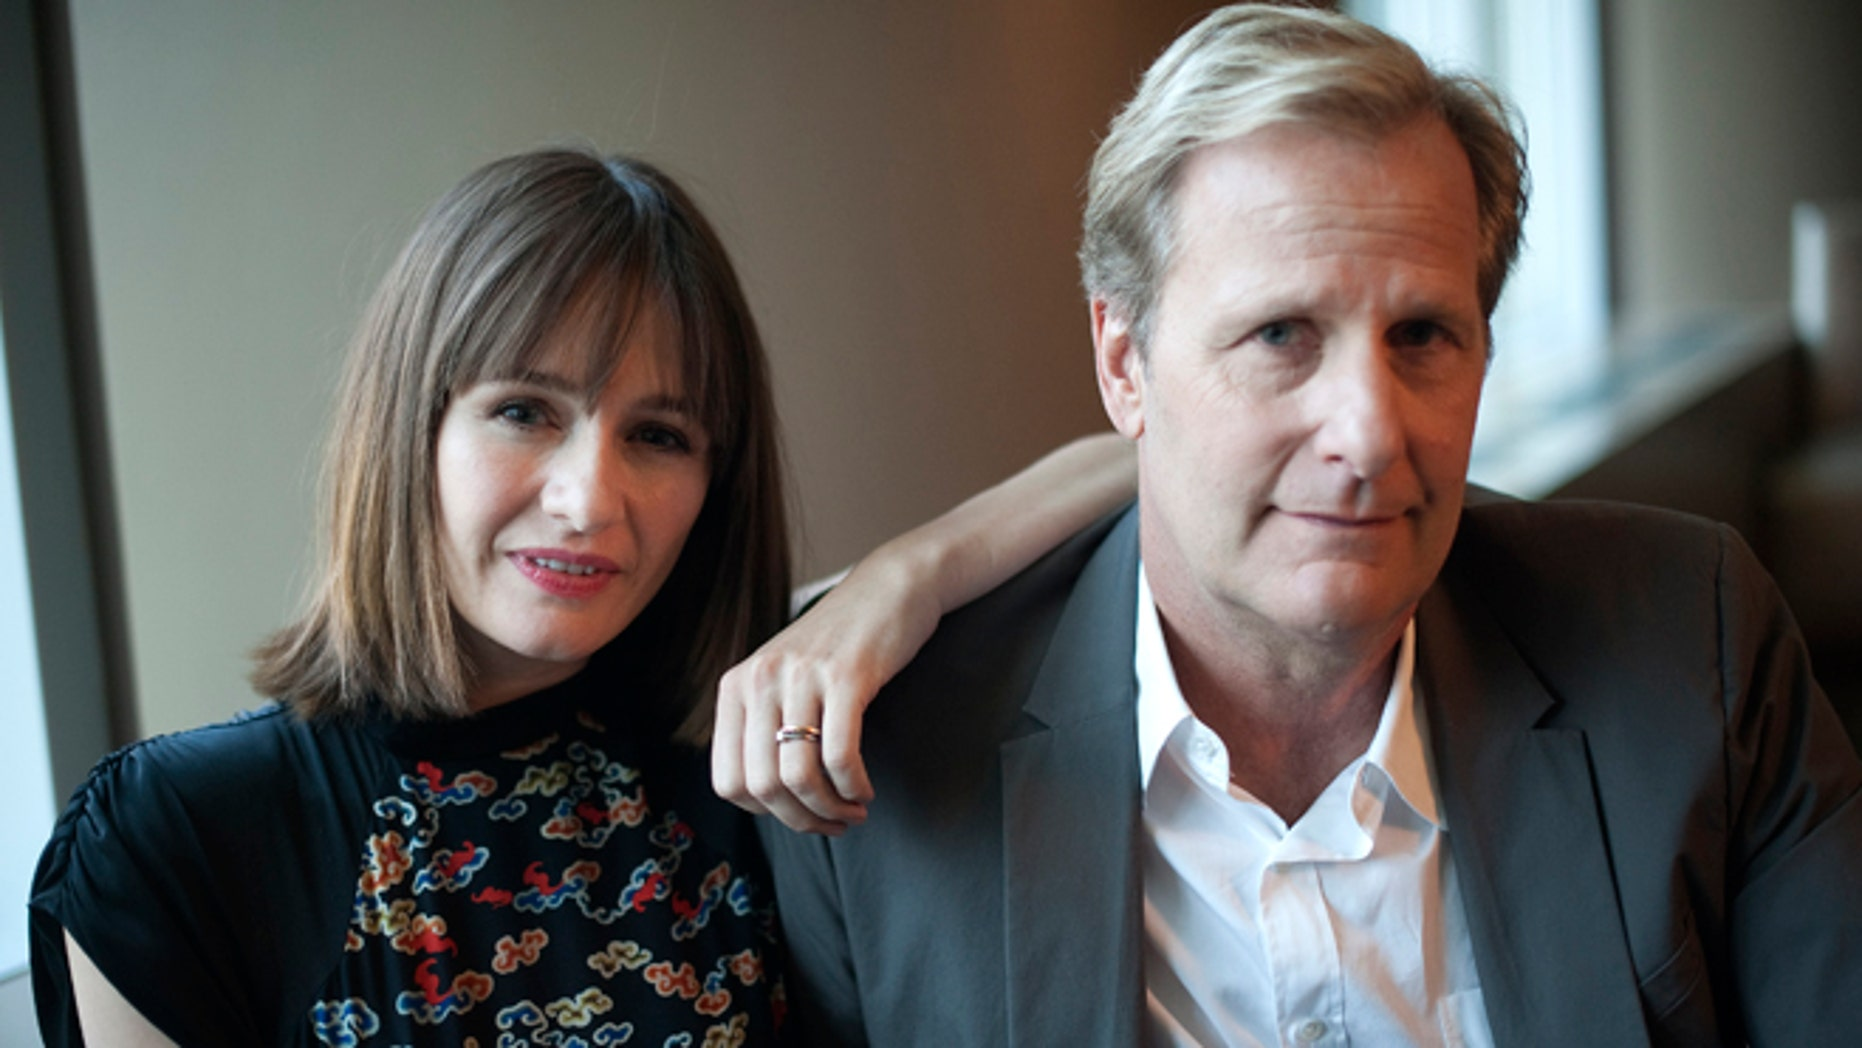 May 17, 2012: Cast members Emily Mortimer and Jeff Daniels (R) pose for a photo at the offices of HBO in New York.